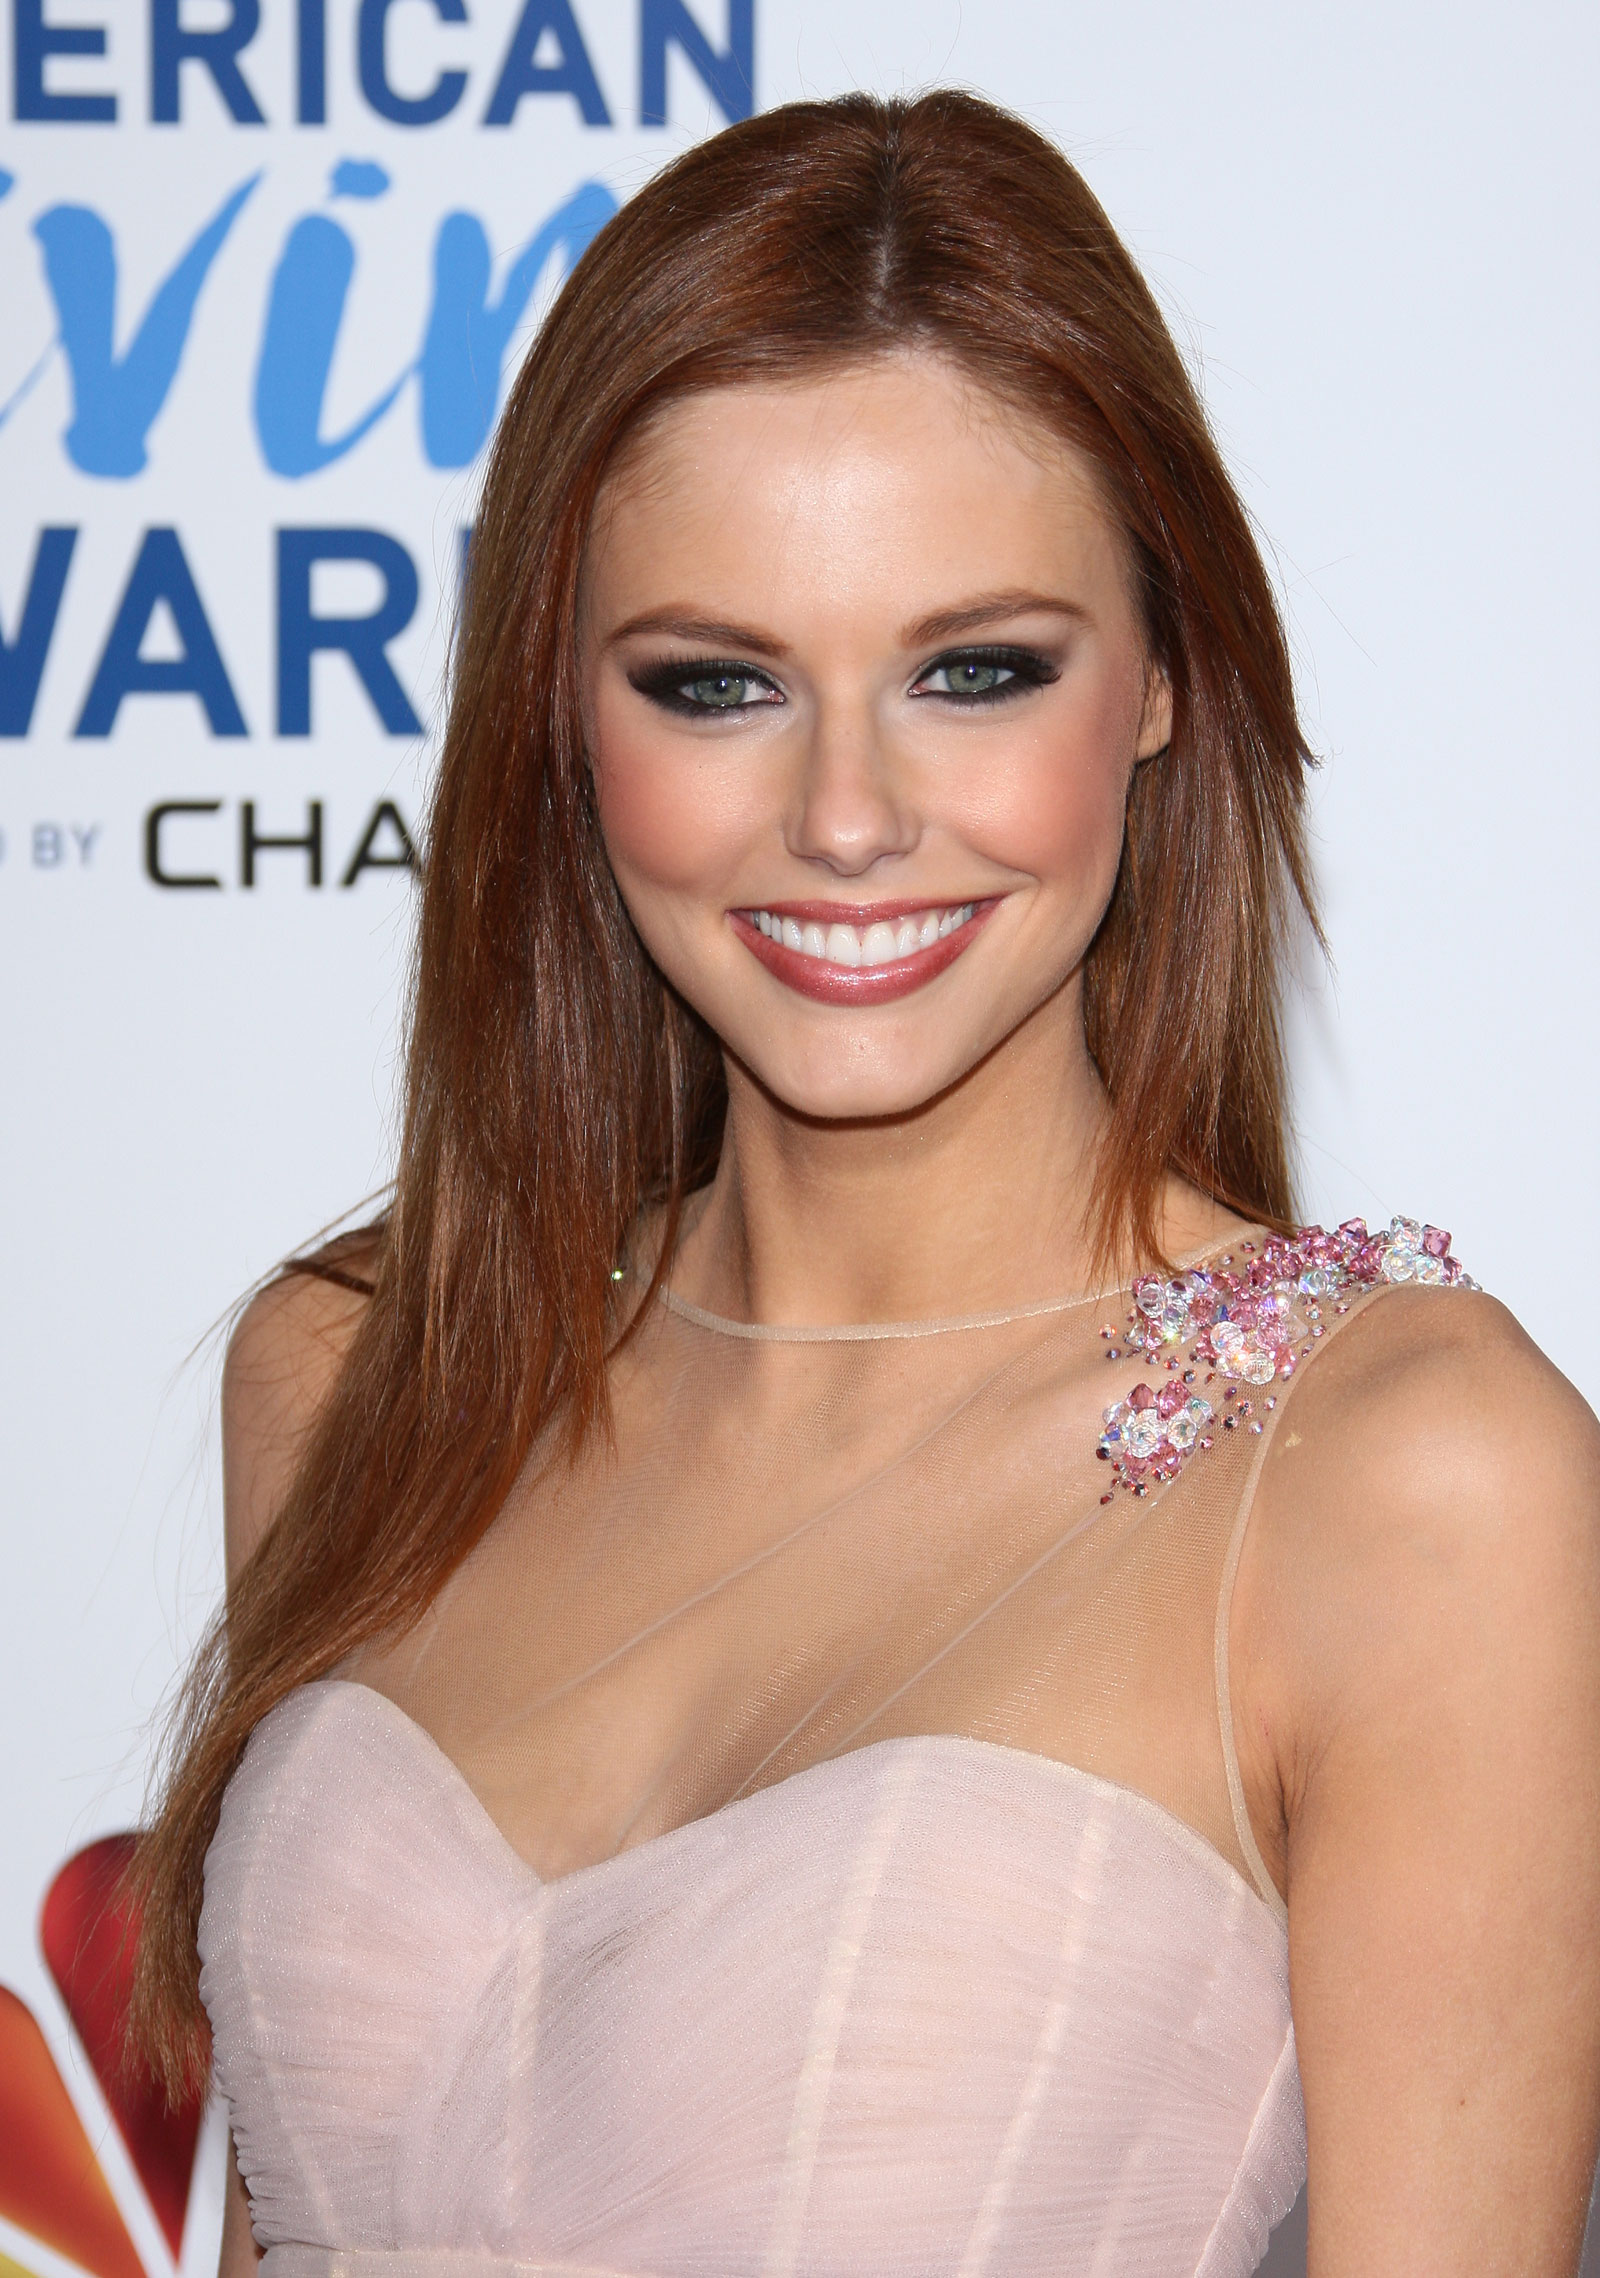 Image result for ALYSSA CAMPANELLA